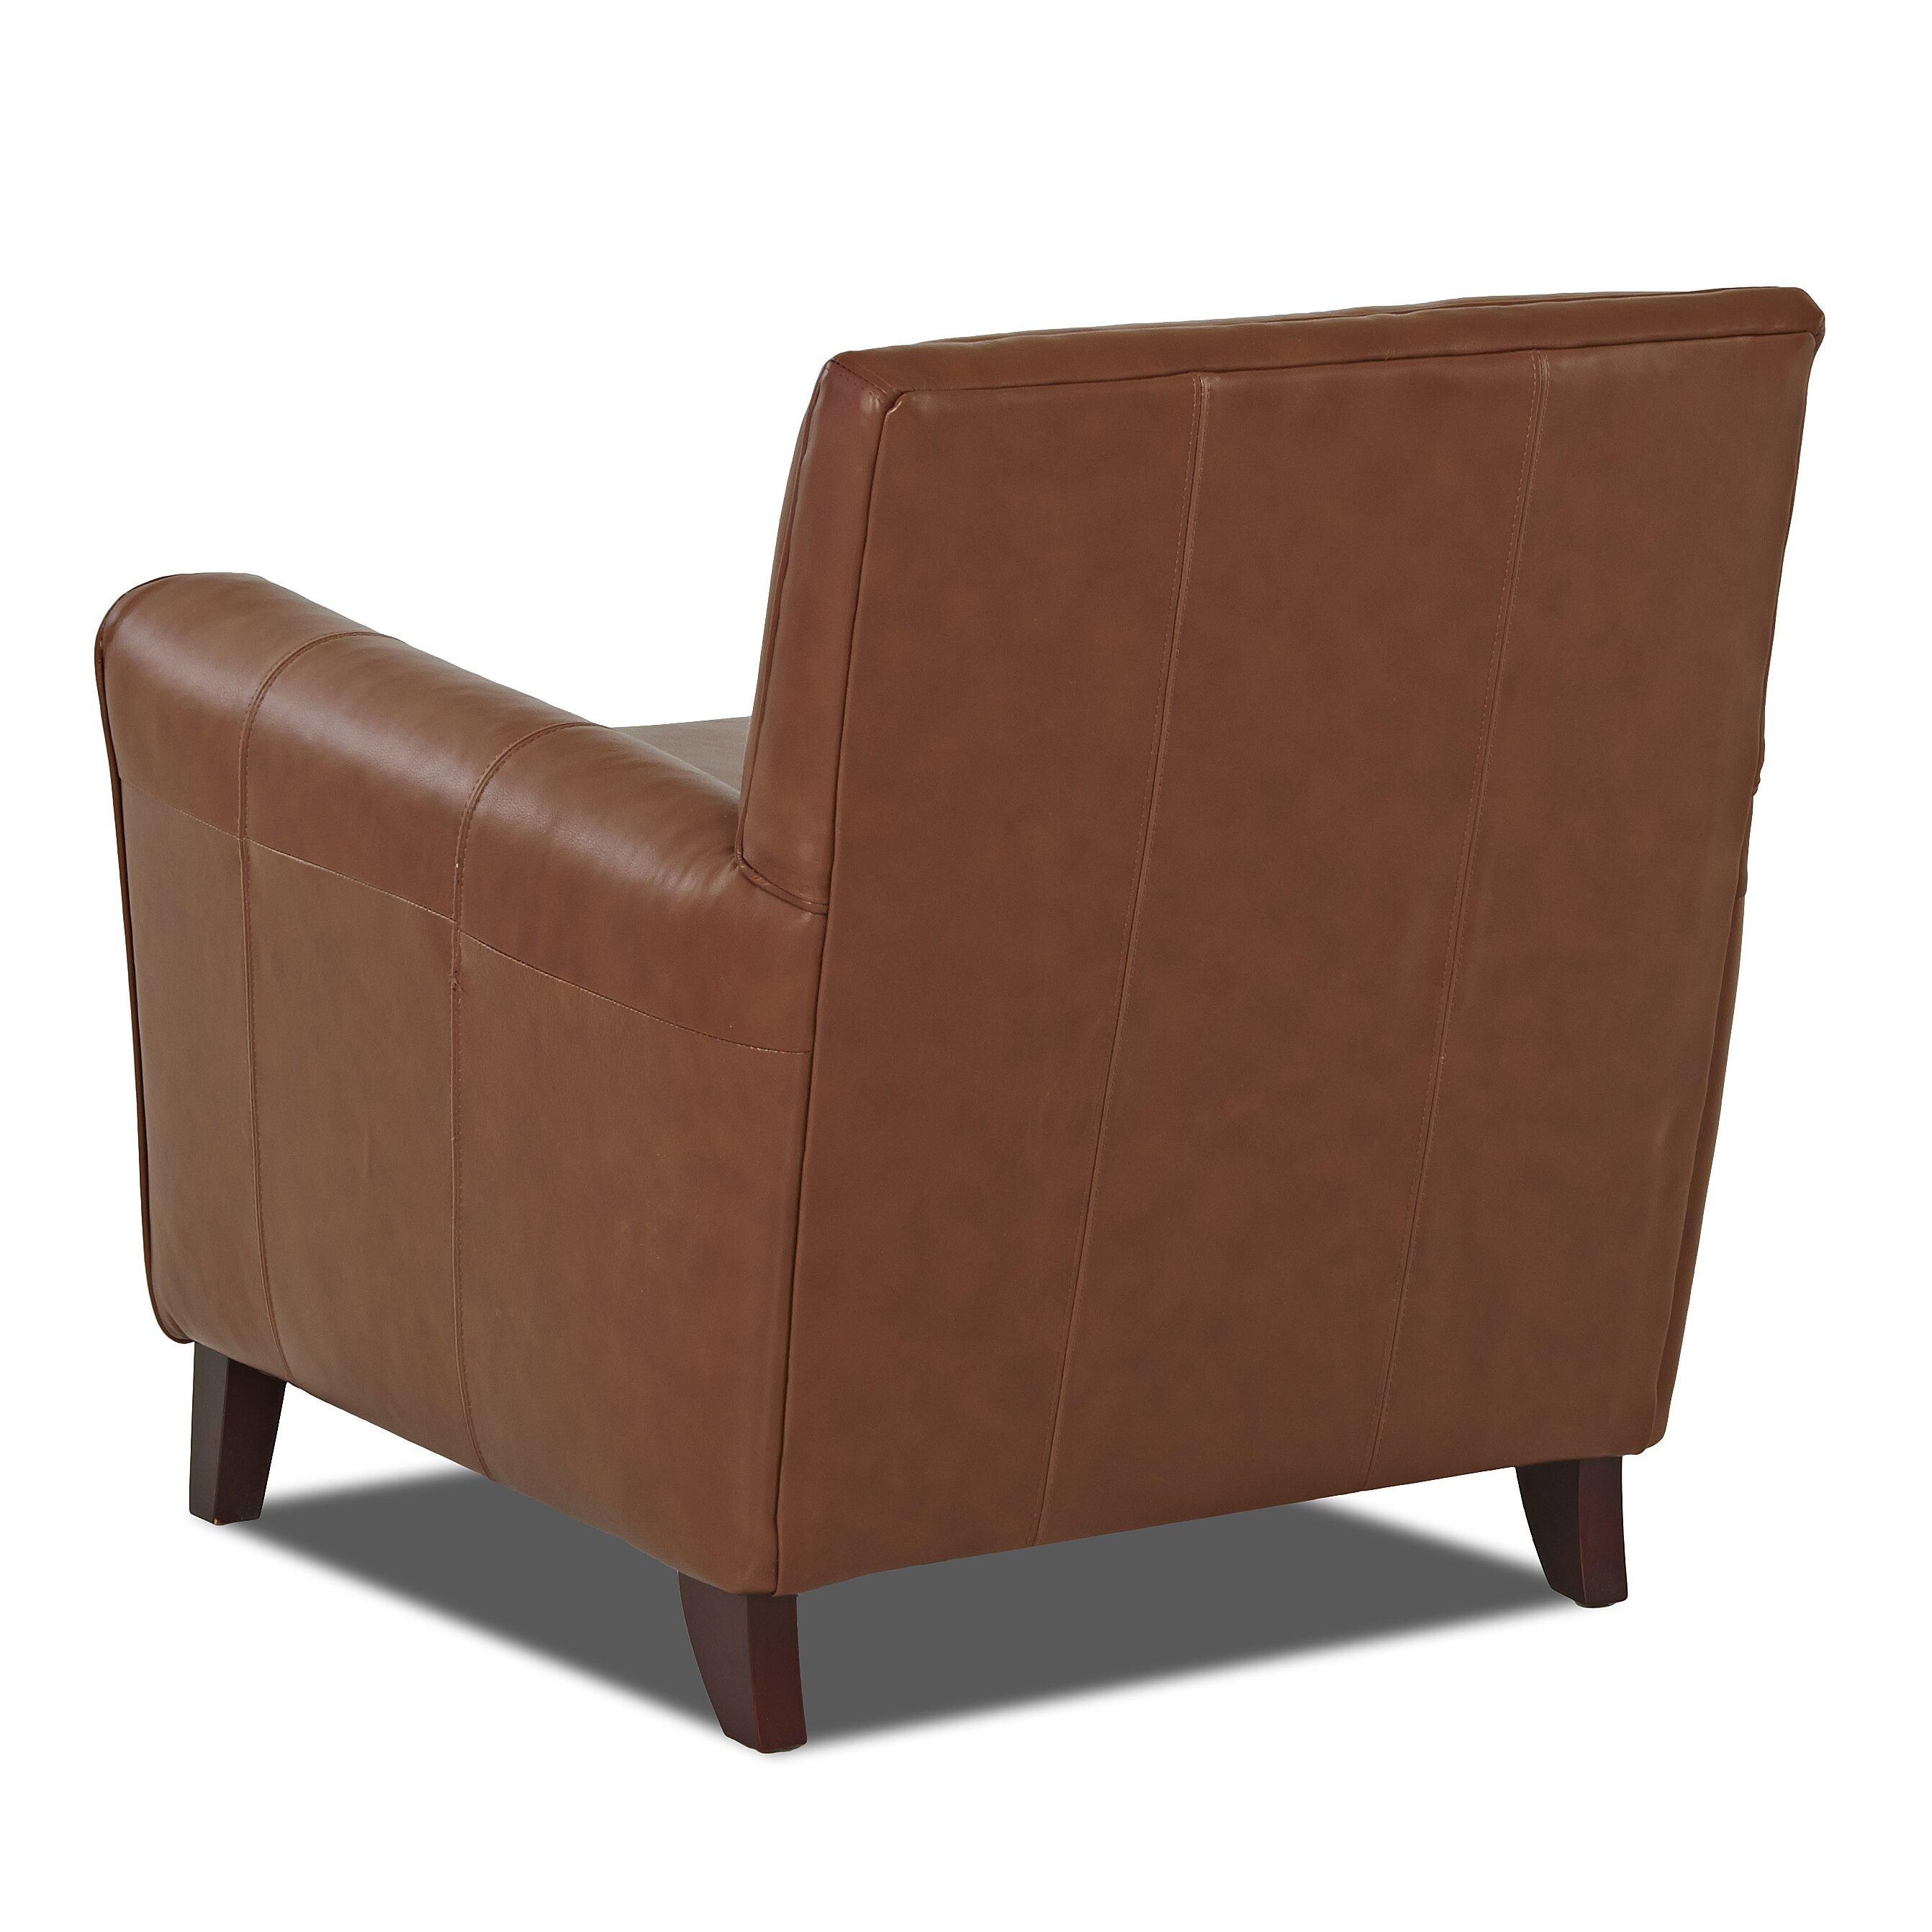 Warefair Com: Wayfair Custom Upholstery Grayson Leather Arm Chair